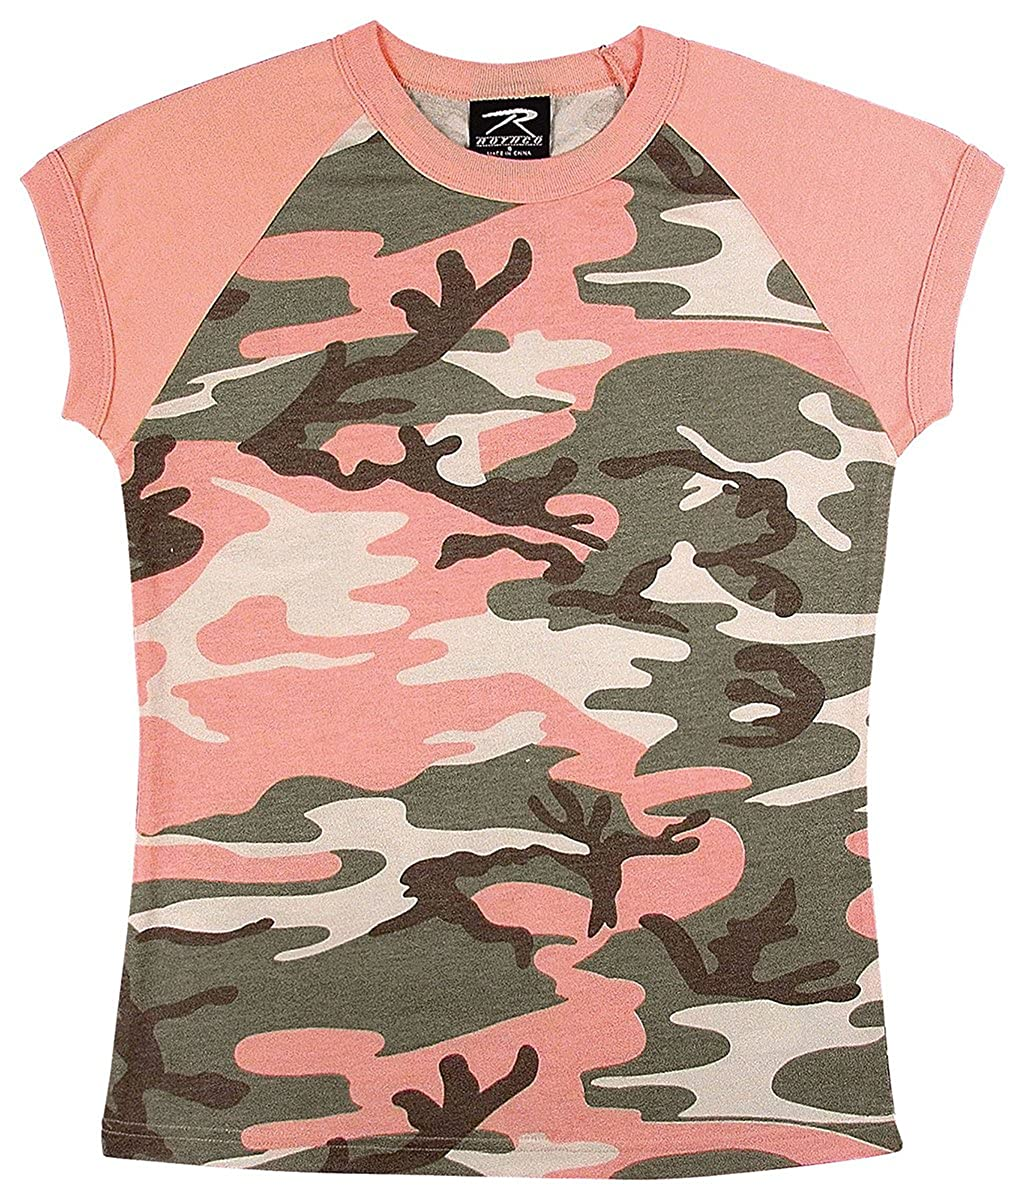 Rothco Short Sleeve Camo Raglan T-Shirt RSR Group Inc